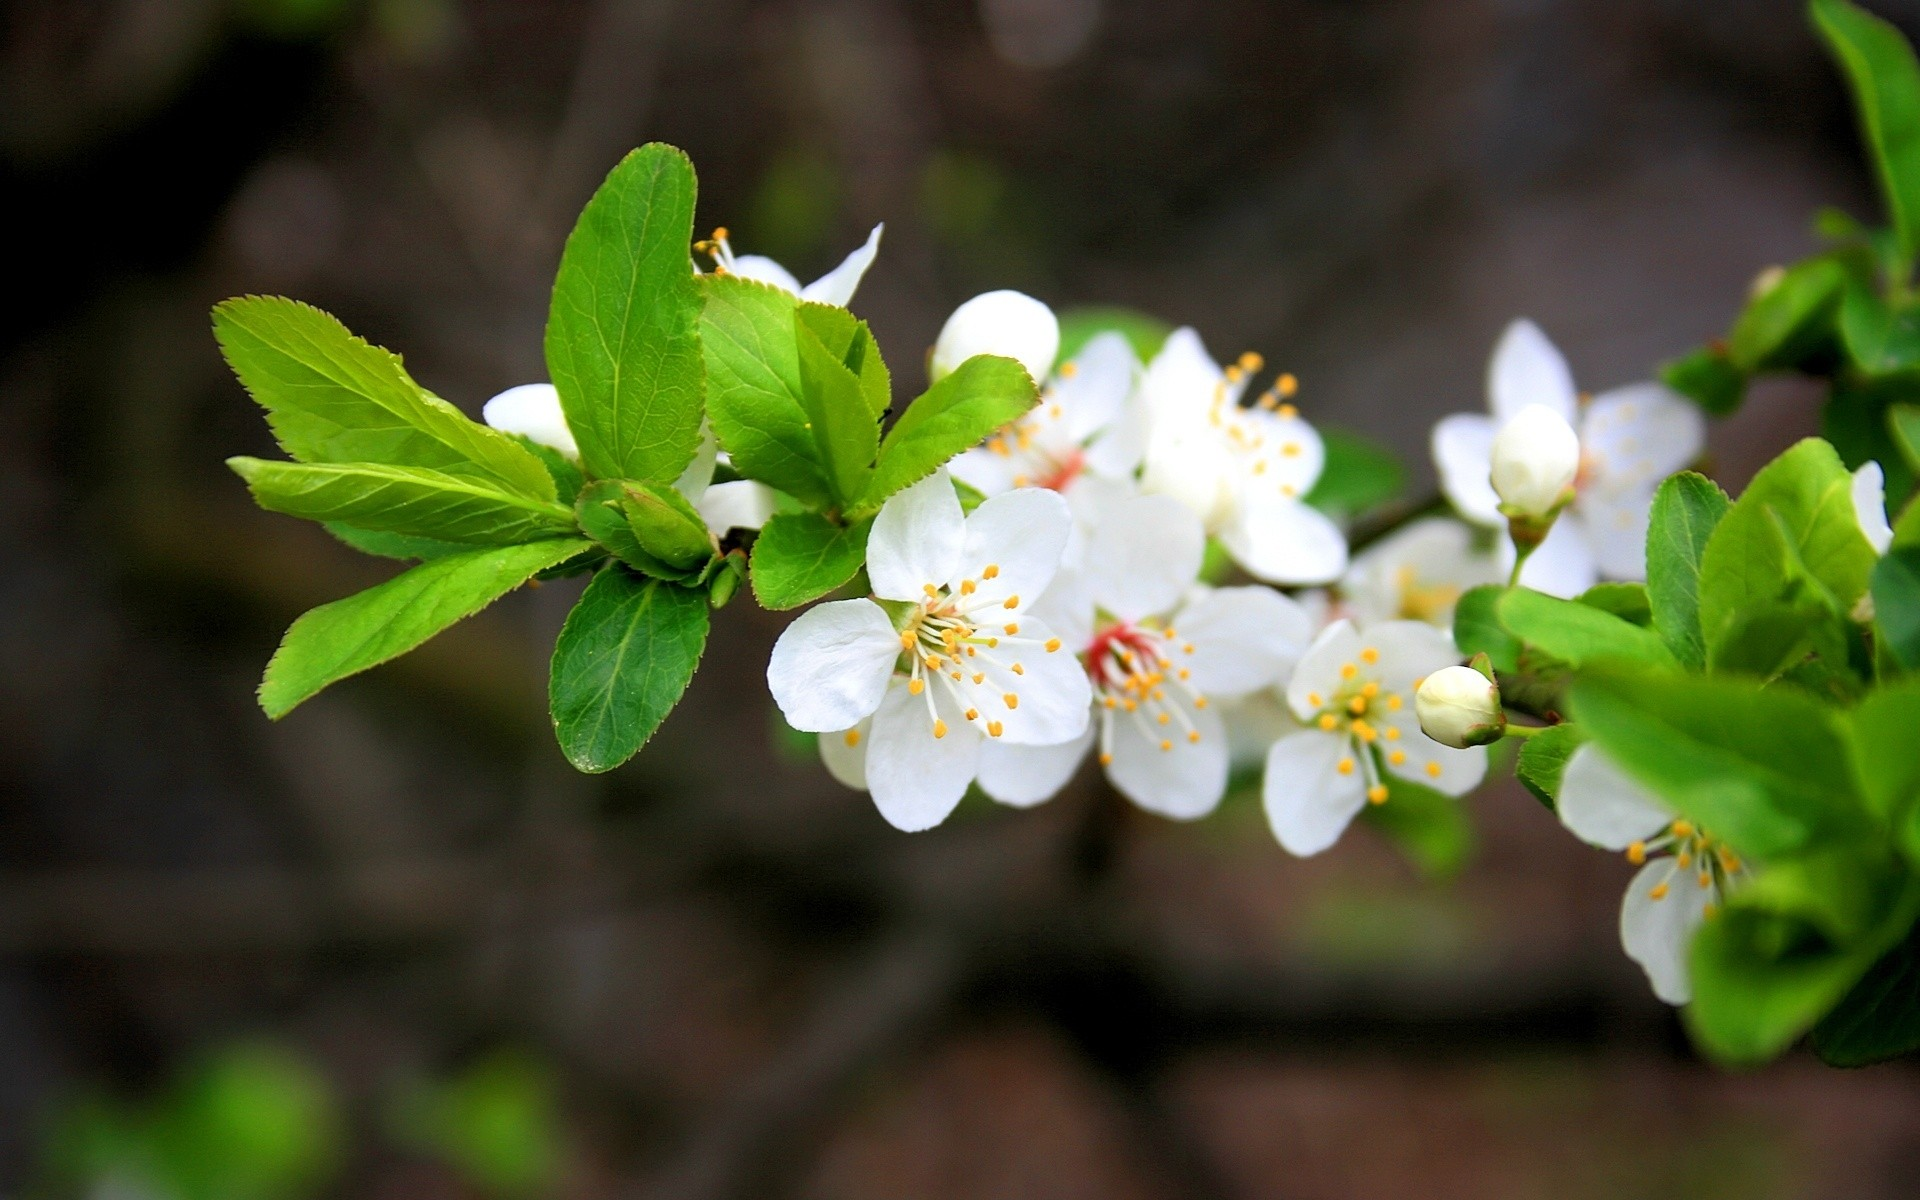 flowers nature flower leaf flora tree garden branch growth blooming season bud cherry outdoors close-up floral petal park apple summer